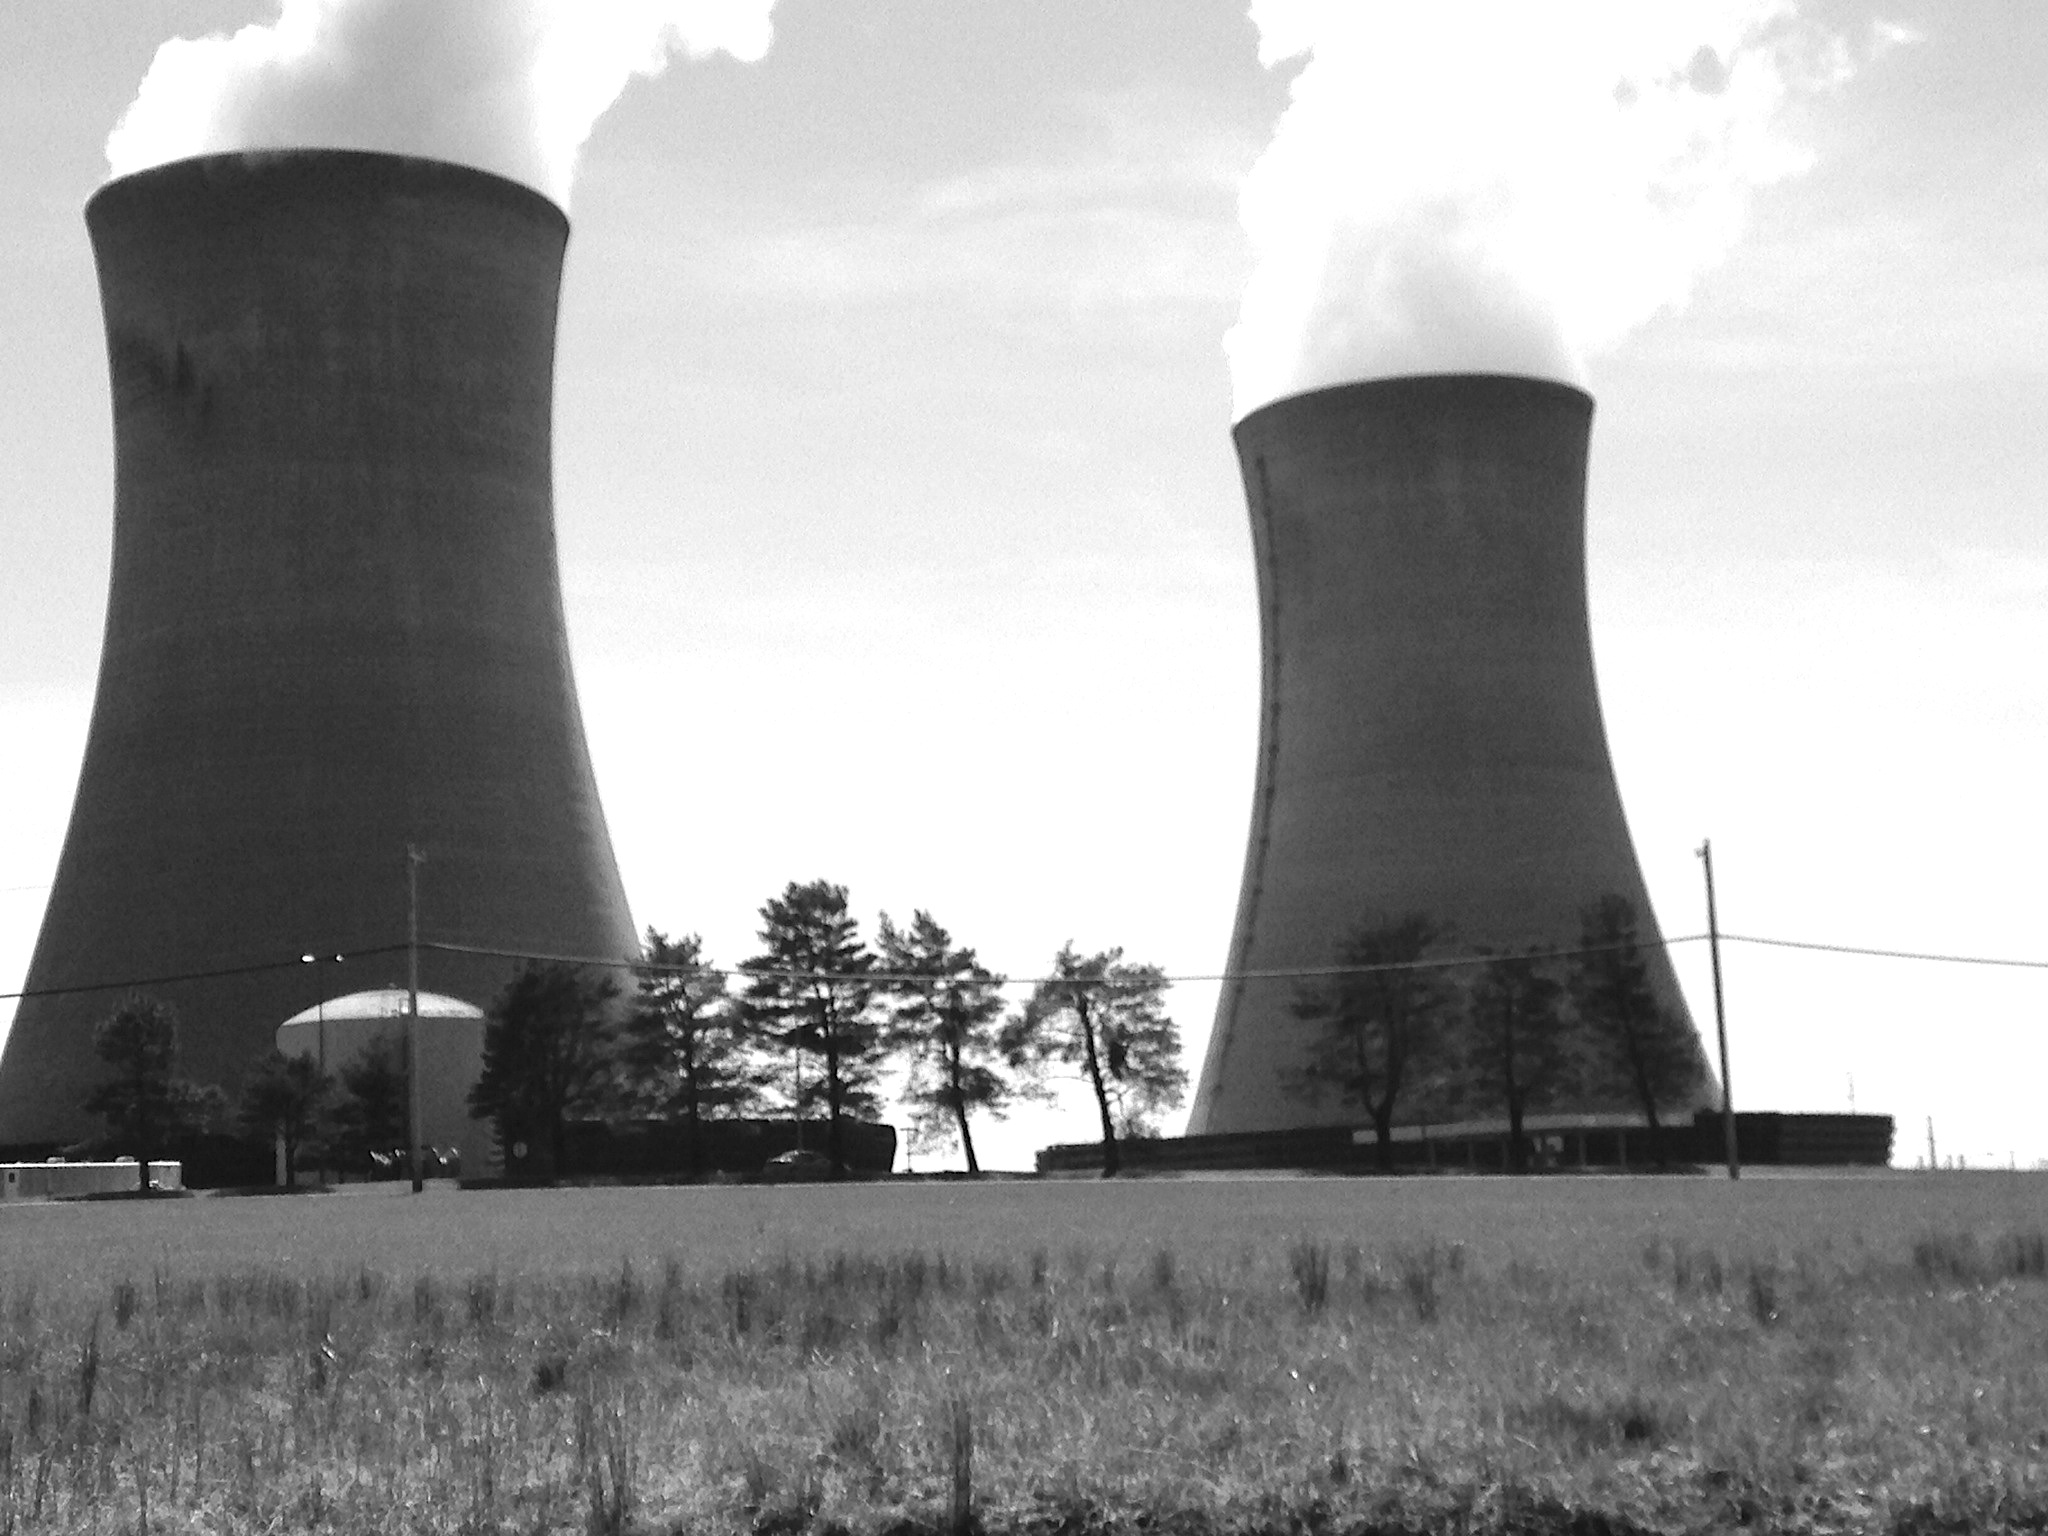 nuclear energy should we use it Another reason we should use more nuclear energy is that it is a cheaper source of energy than gasoline, a fuel source that has been troubling our economy for many years.